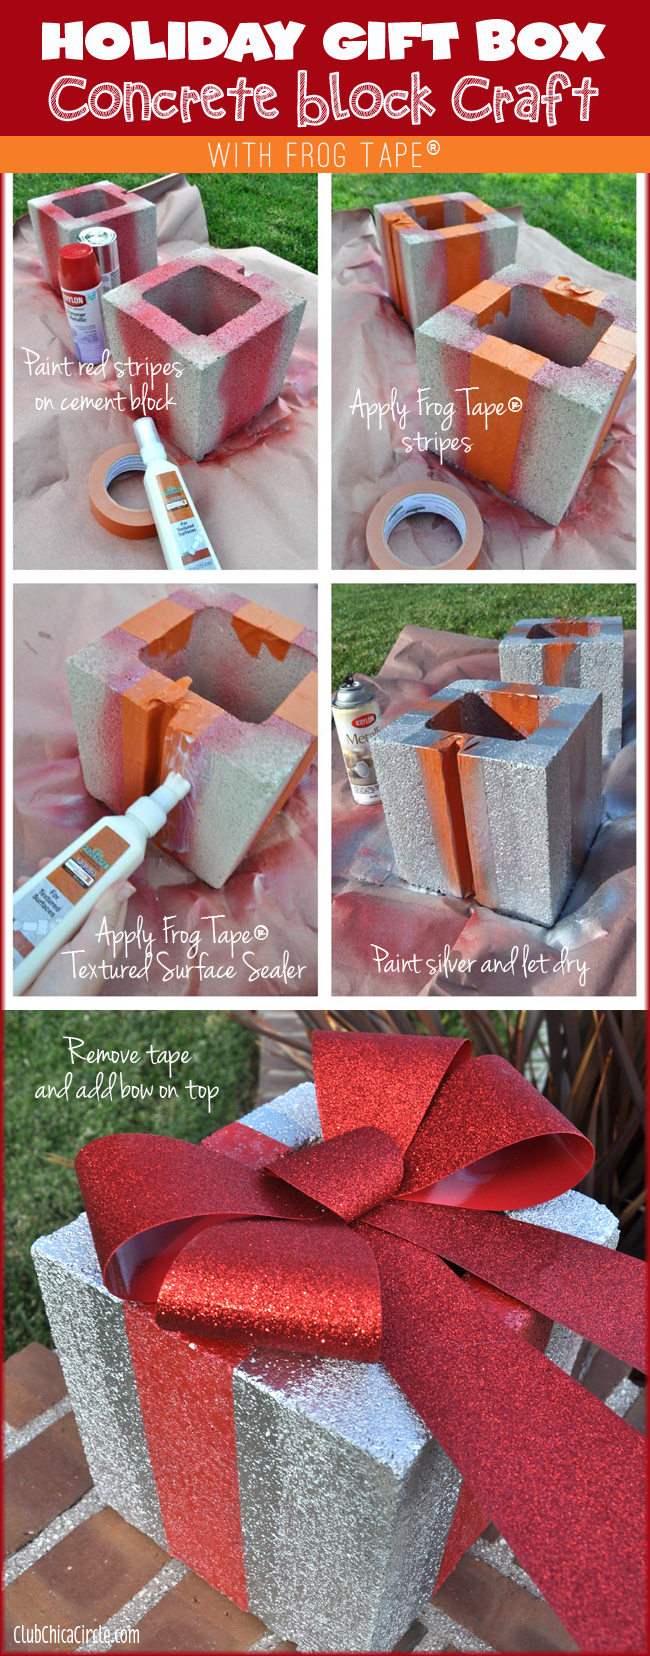 Cement Brick Holiday Gift Box Tutorial with Frog Tape®